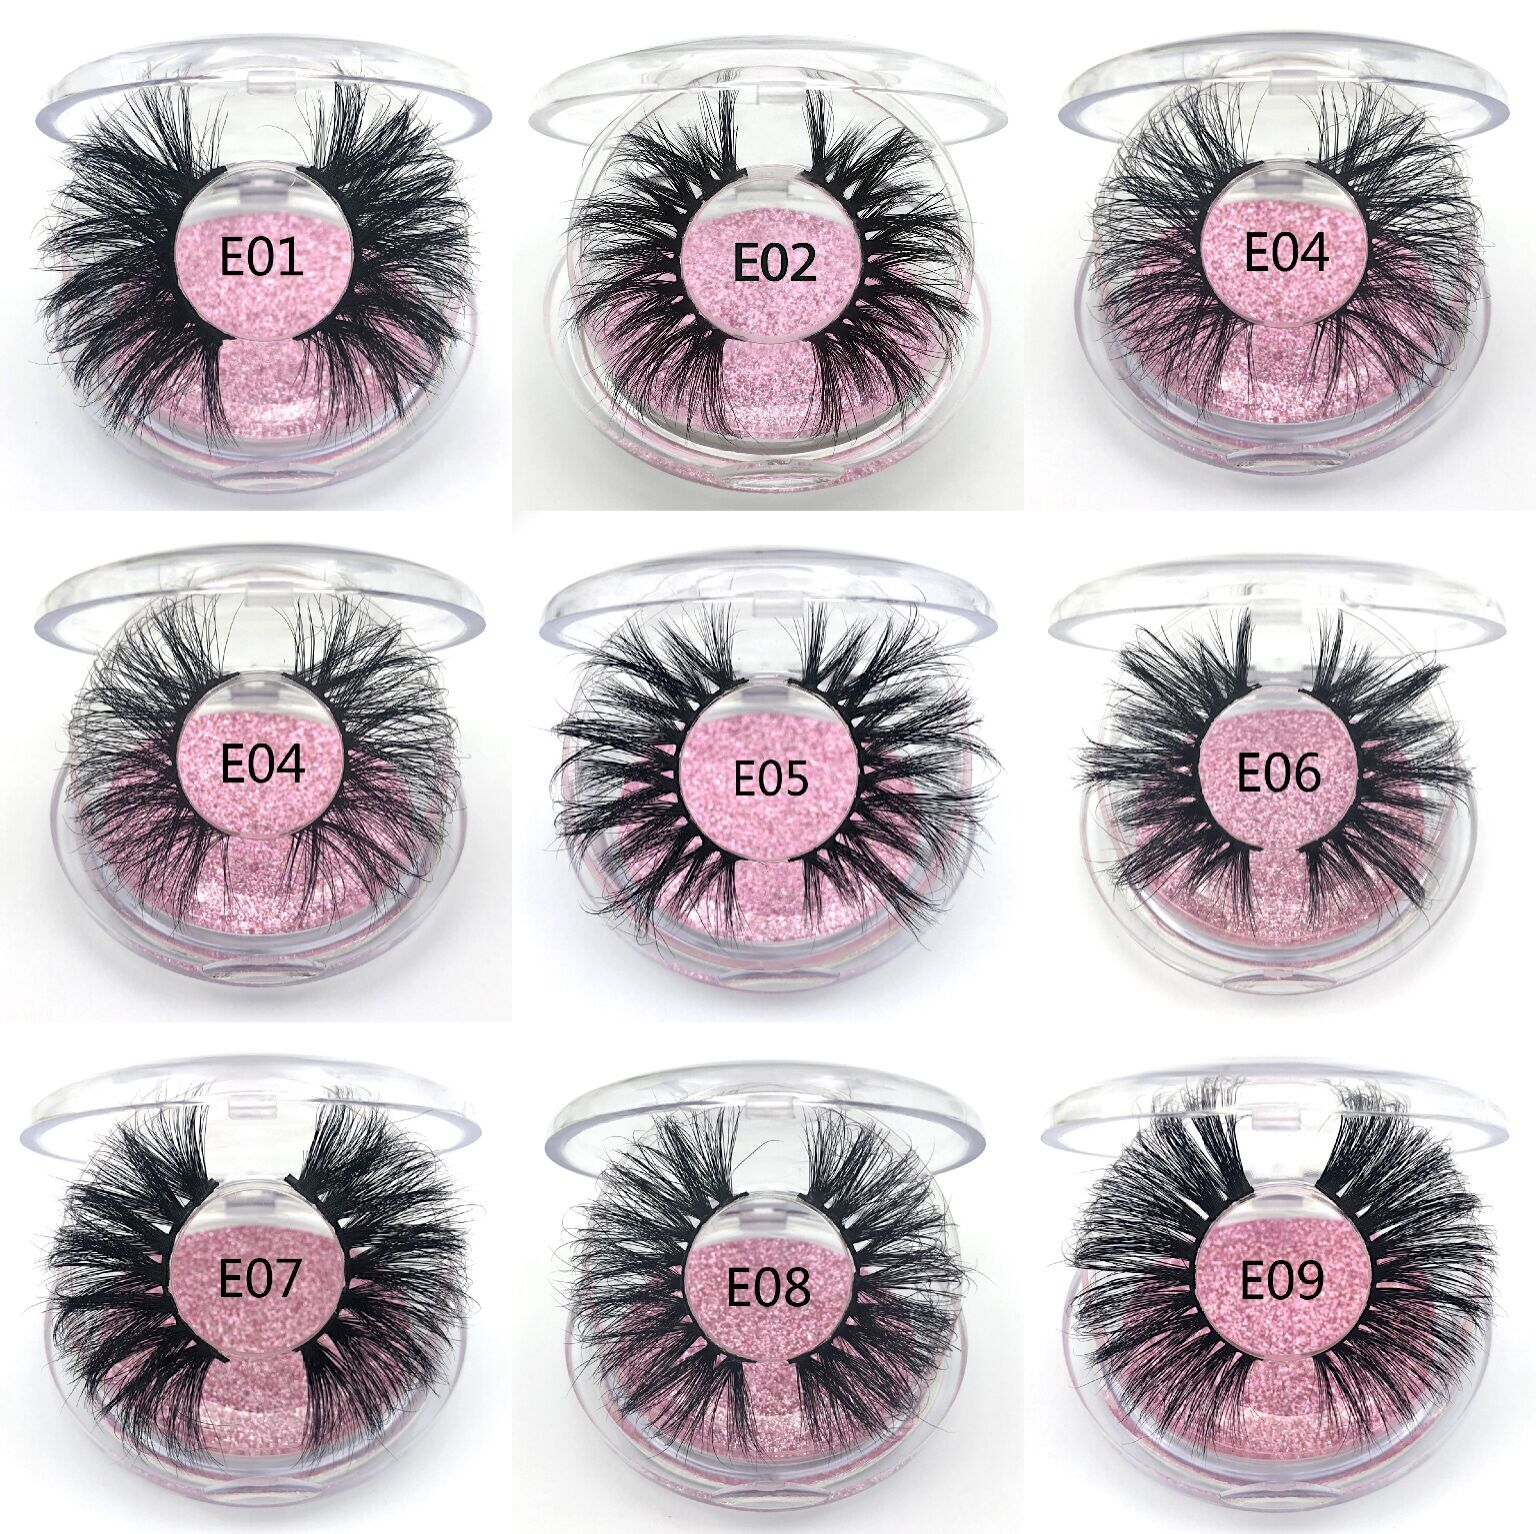 <font><b>25mm</b></font> Nerz Falsche Wimpern 20/30/<font><b>50</b></font> <font><b>pairs</b></font> Großhandel 3D Nerz Wimpern Cruelty Free Label Make-Up Dramatische lange Nerz Wimpern image